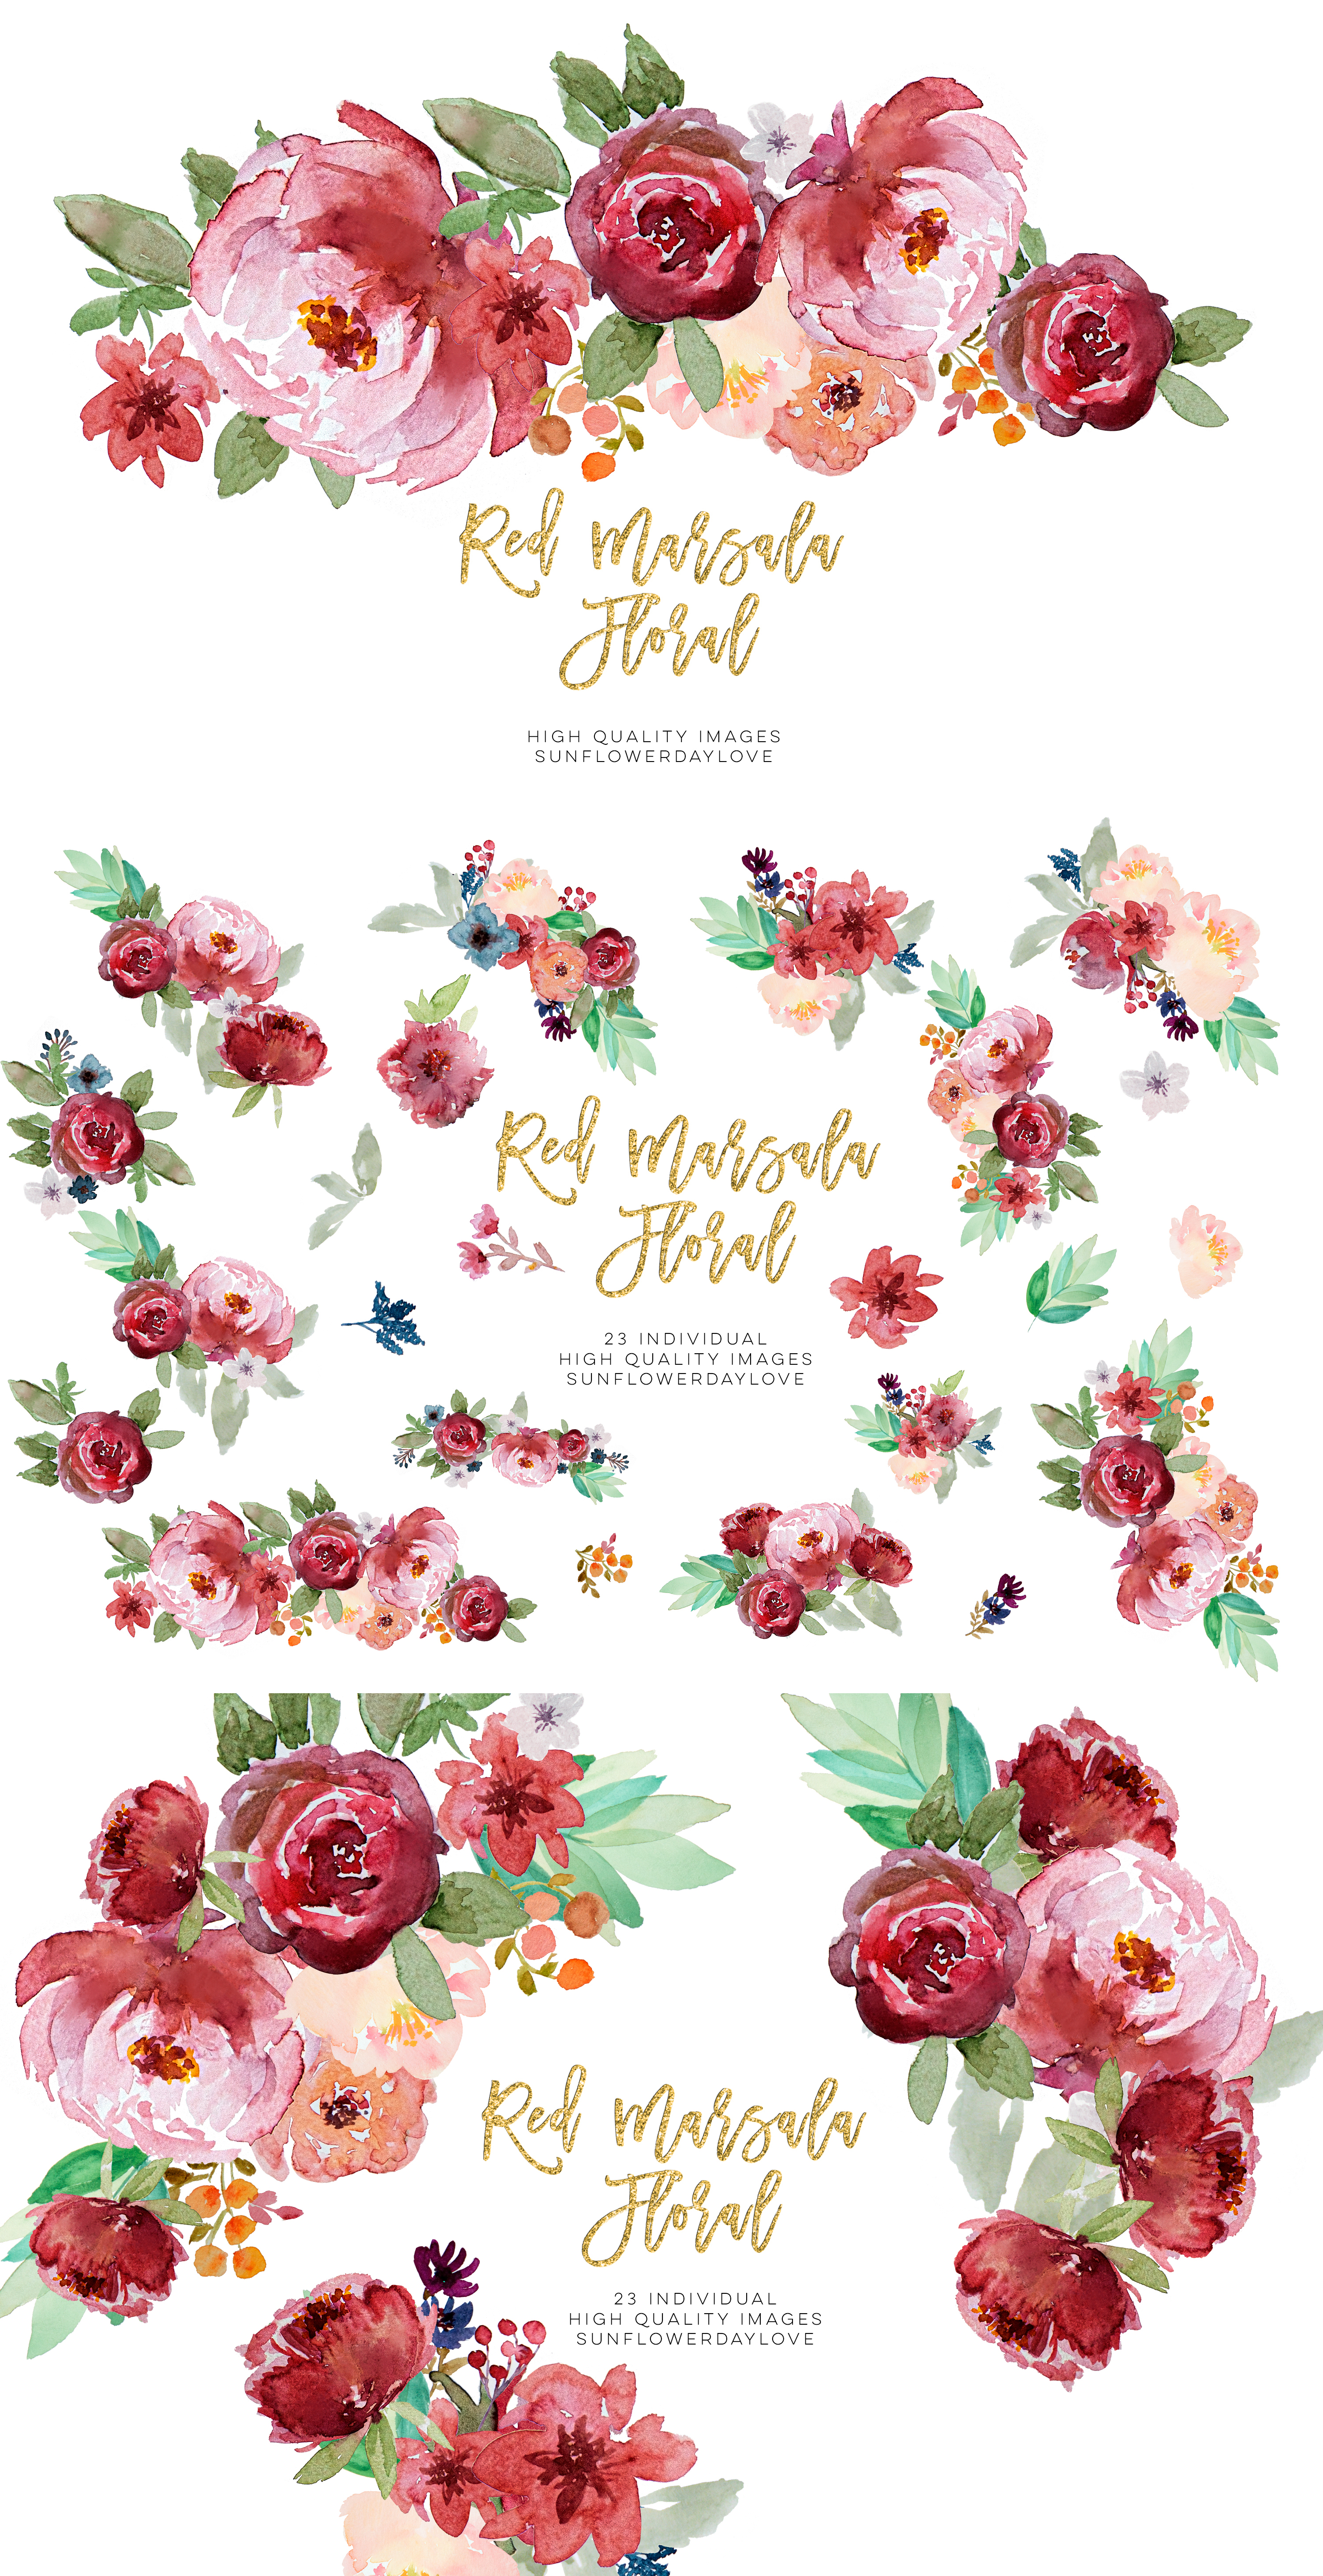 Red marsala floral watercolor clipart example image 4